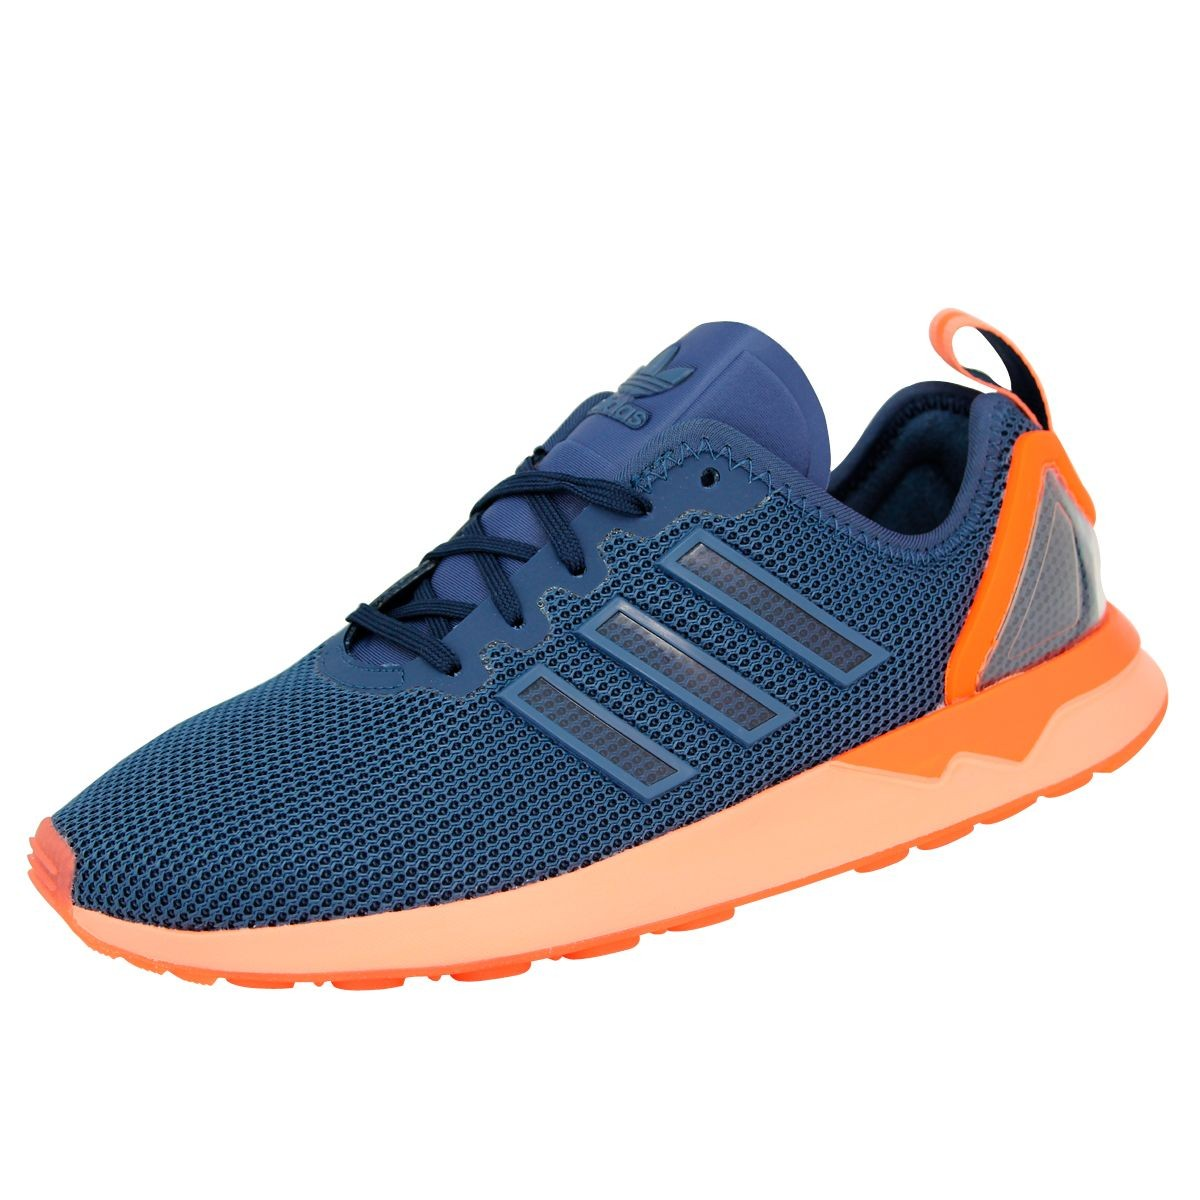 adidas originals zx flux baskets mode homme